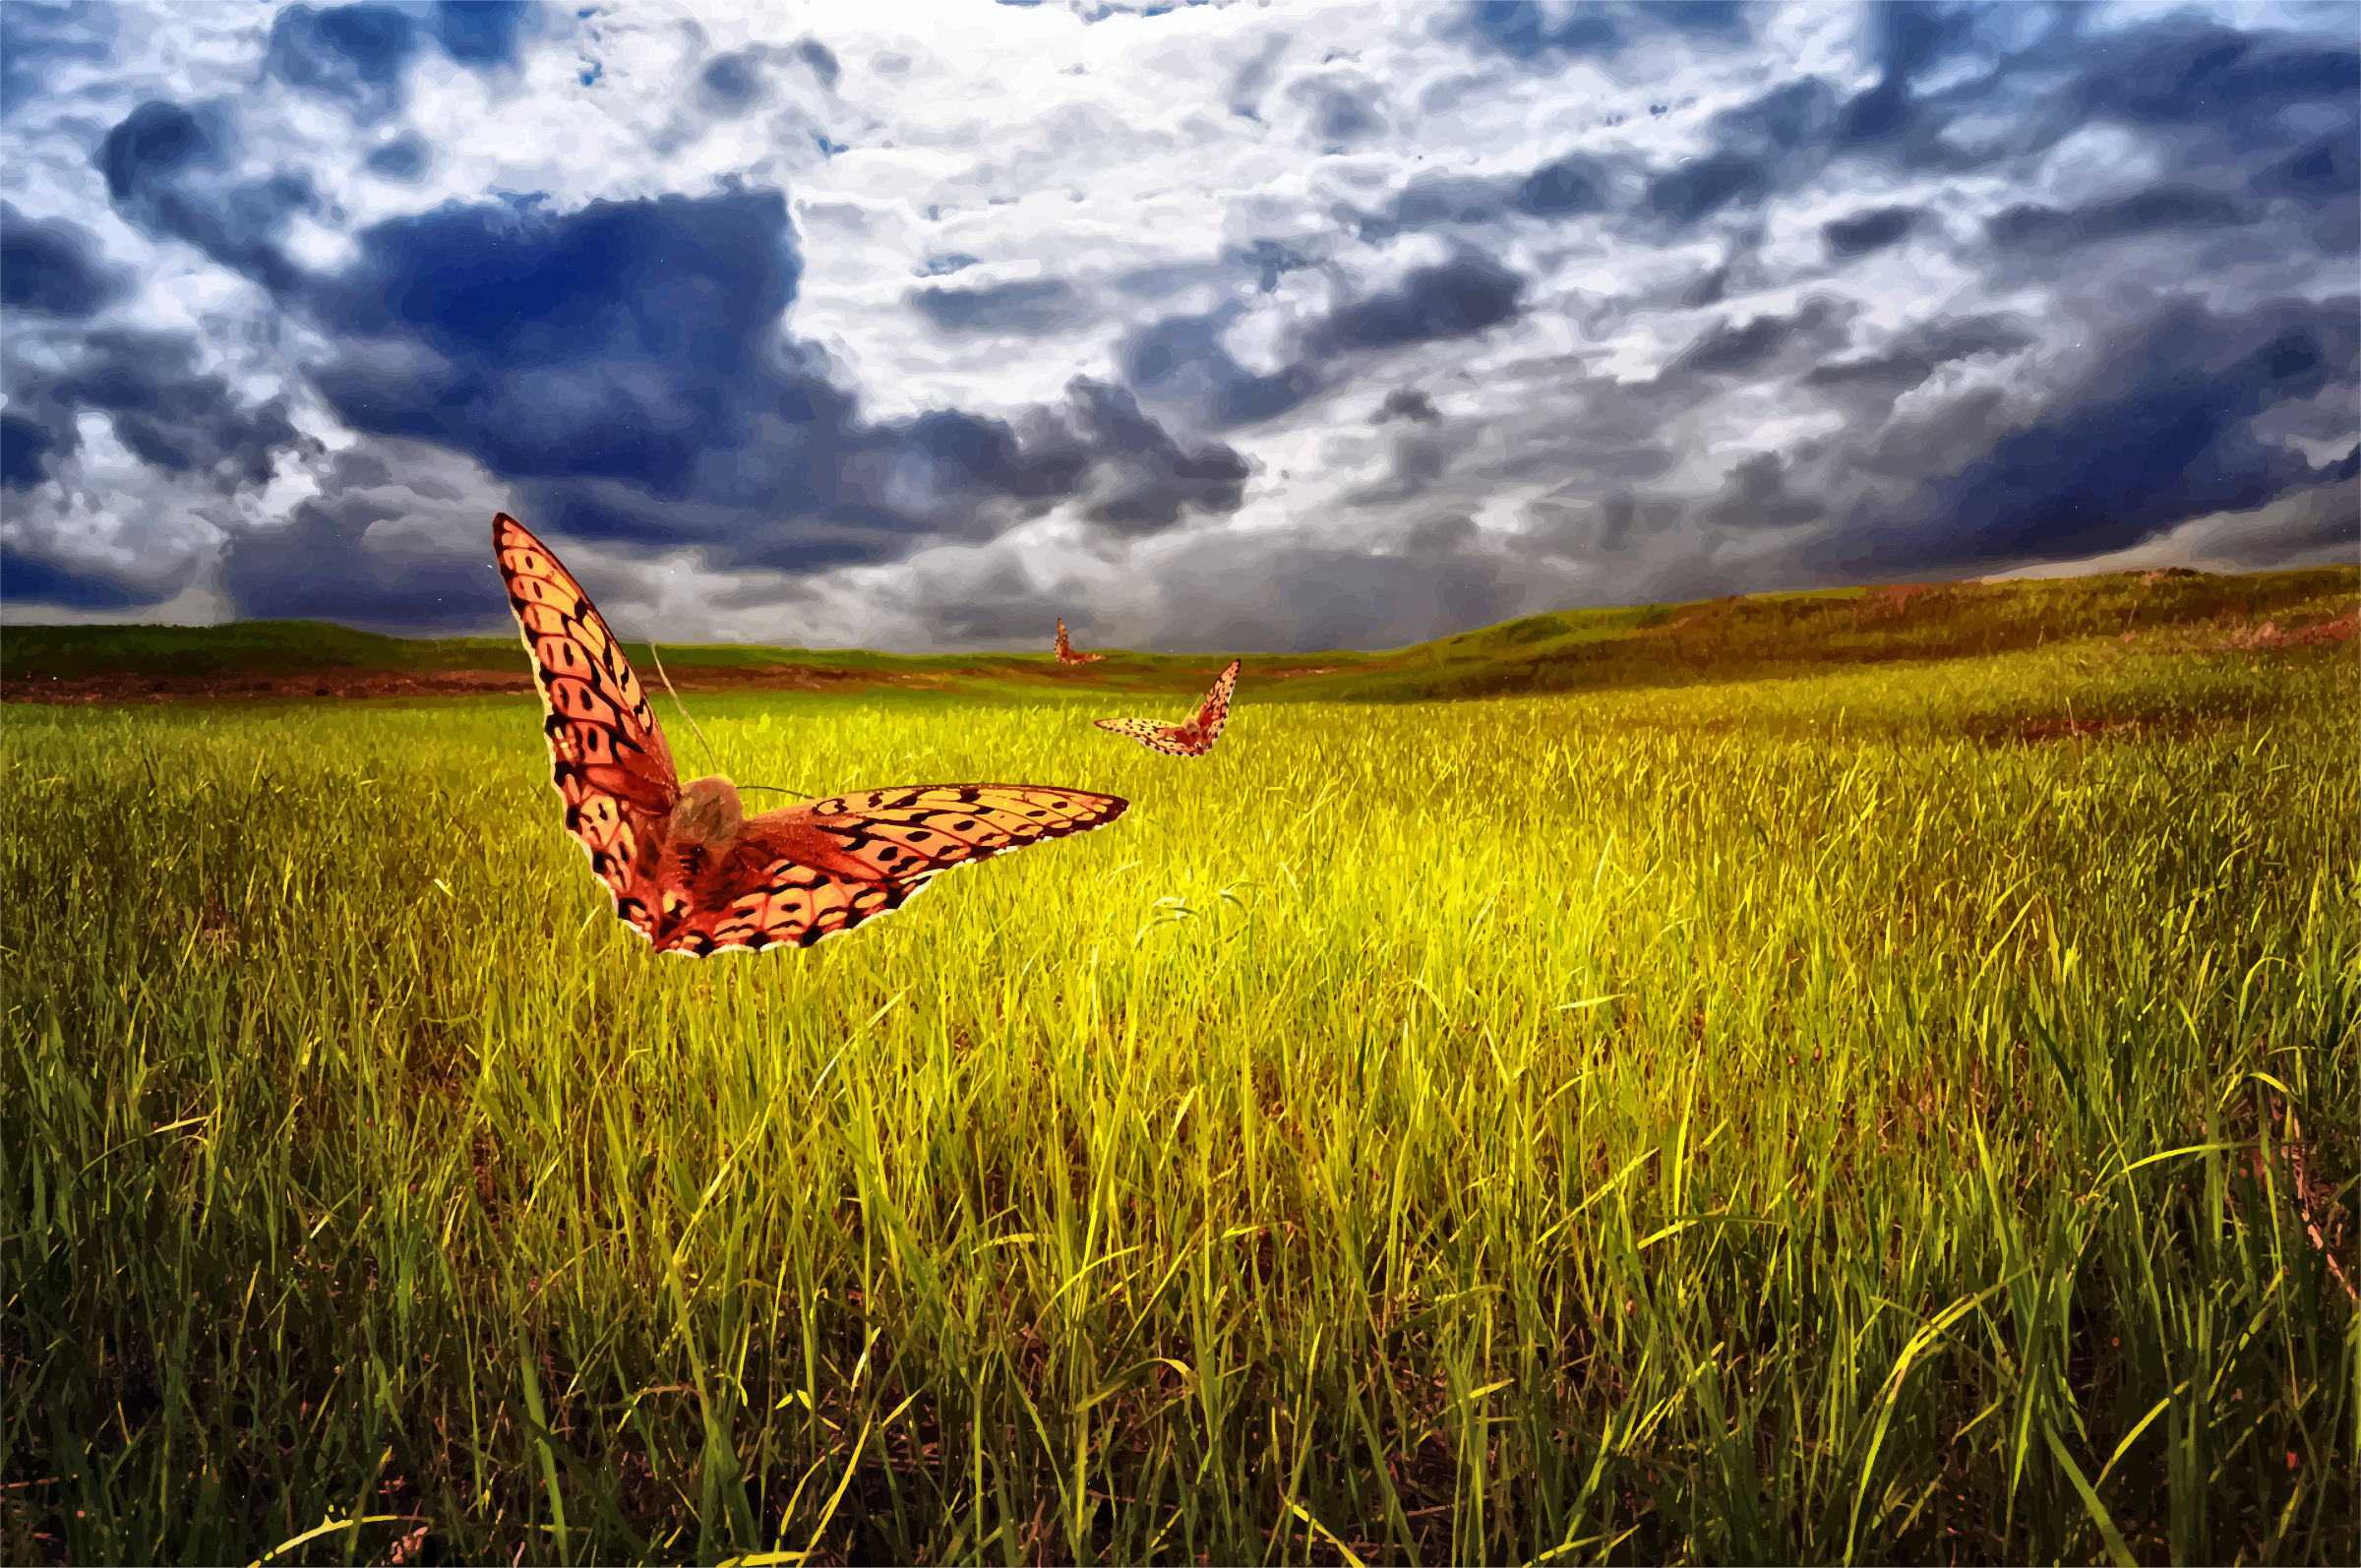 The Field, Sky And Butterflies by GDJ